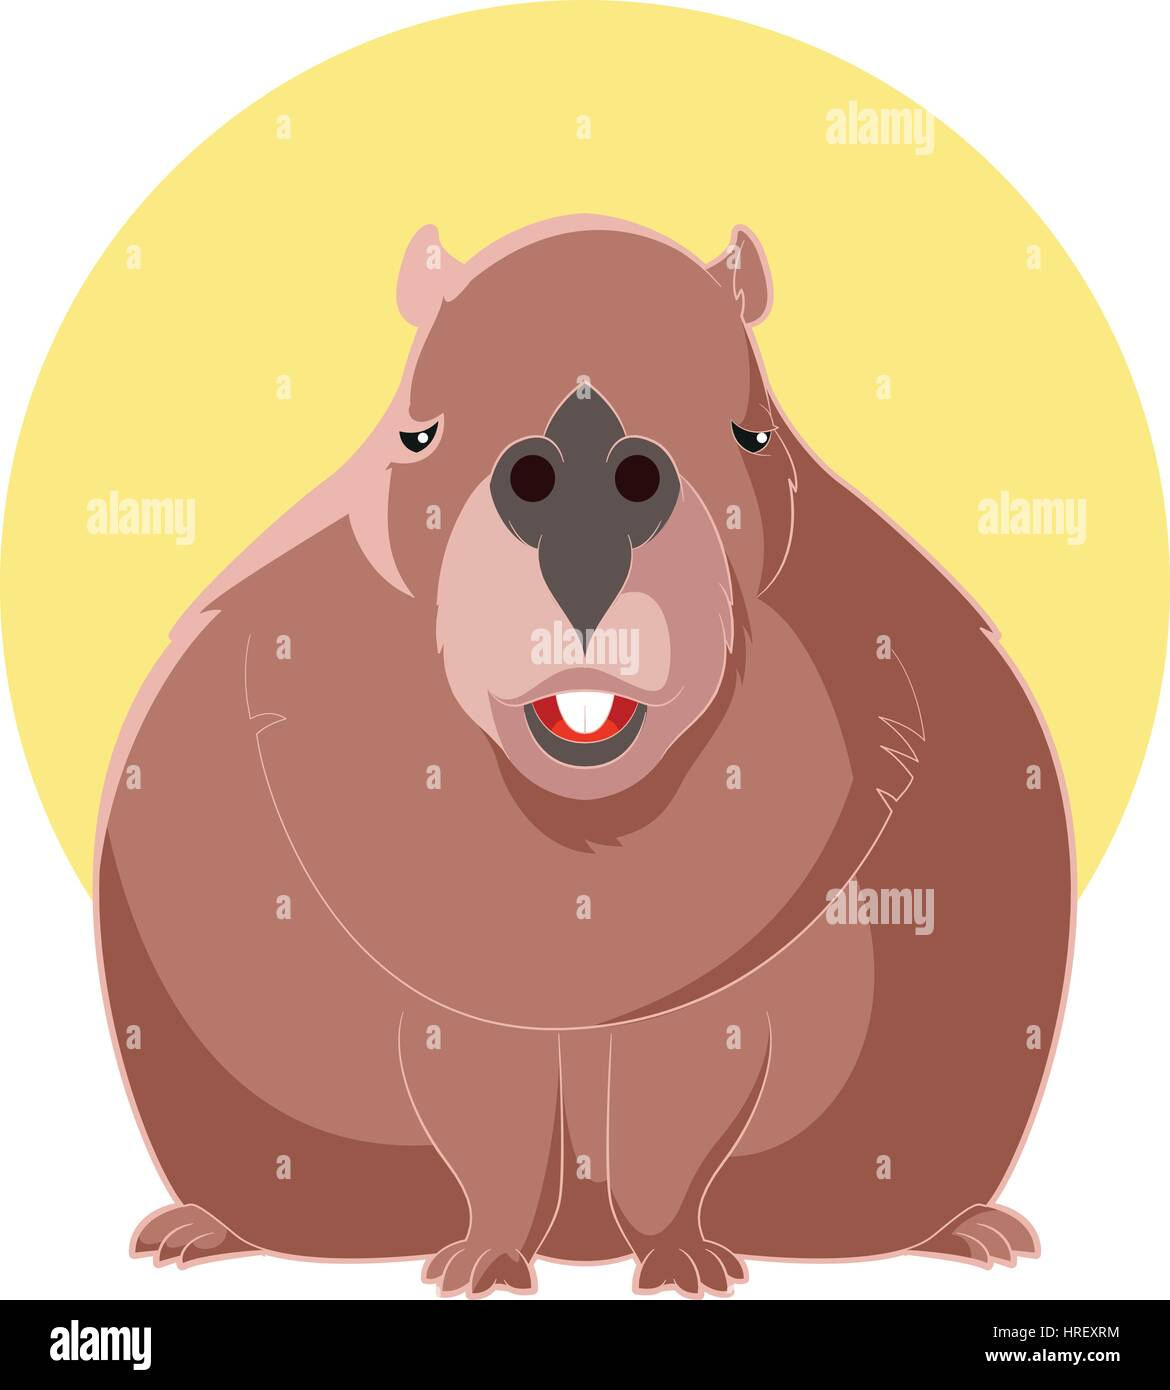 Cartoon Smiling Capybara Stock Vector Art Illustration Vector